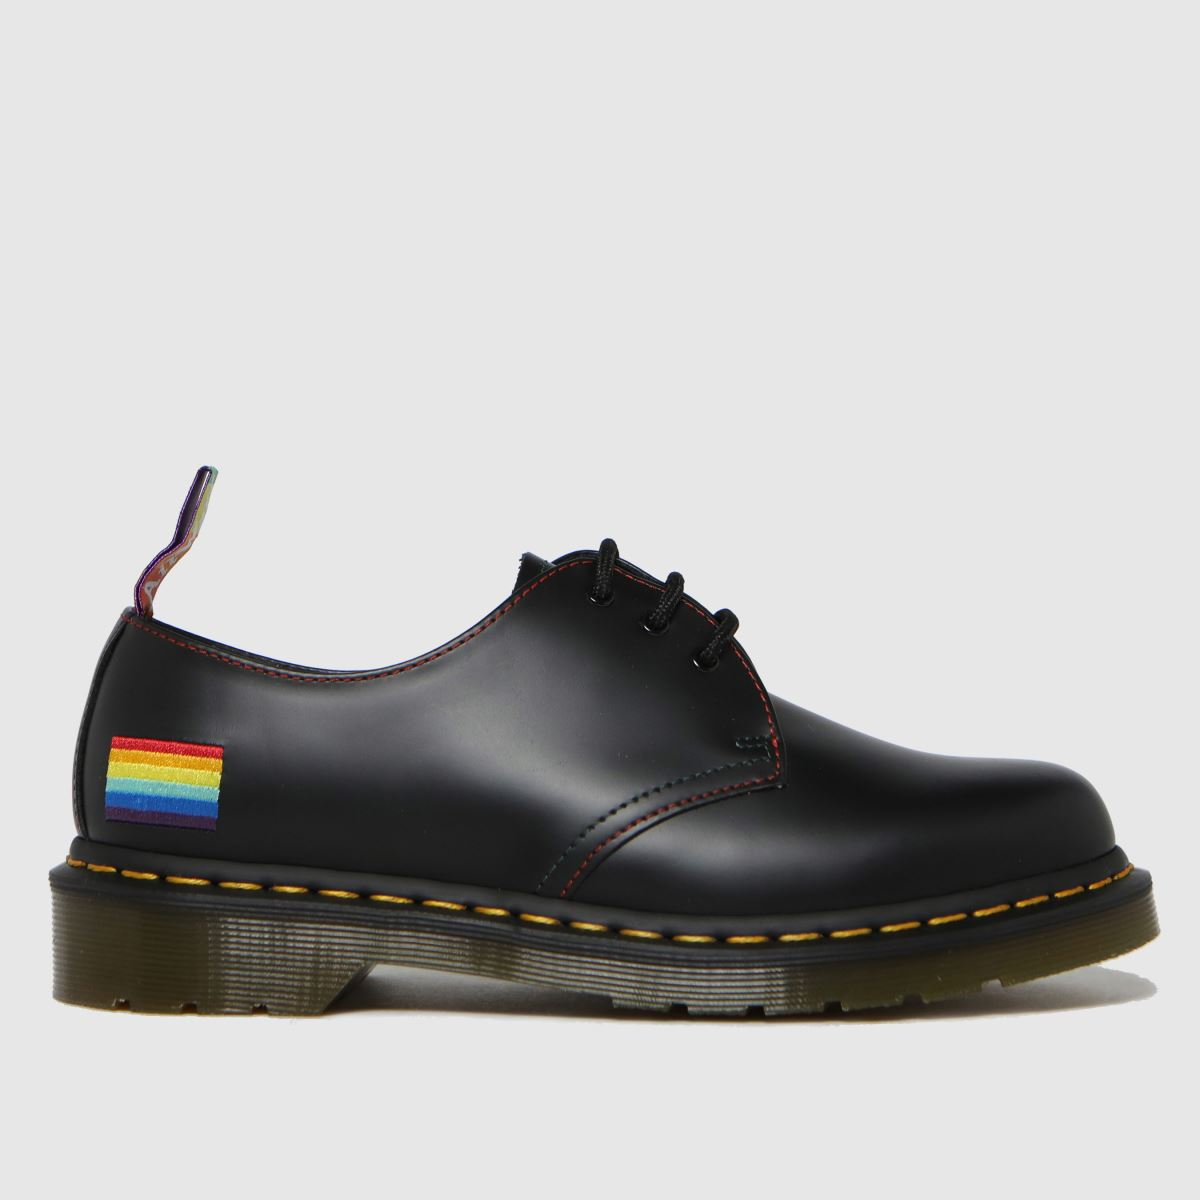 Dr Martens Black 1461 Pride Flat Shoes